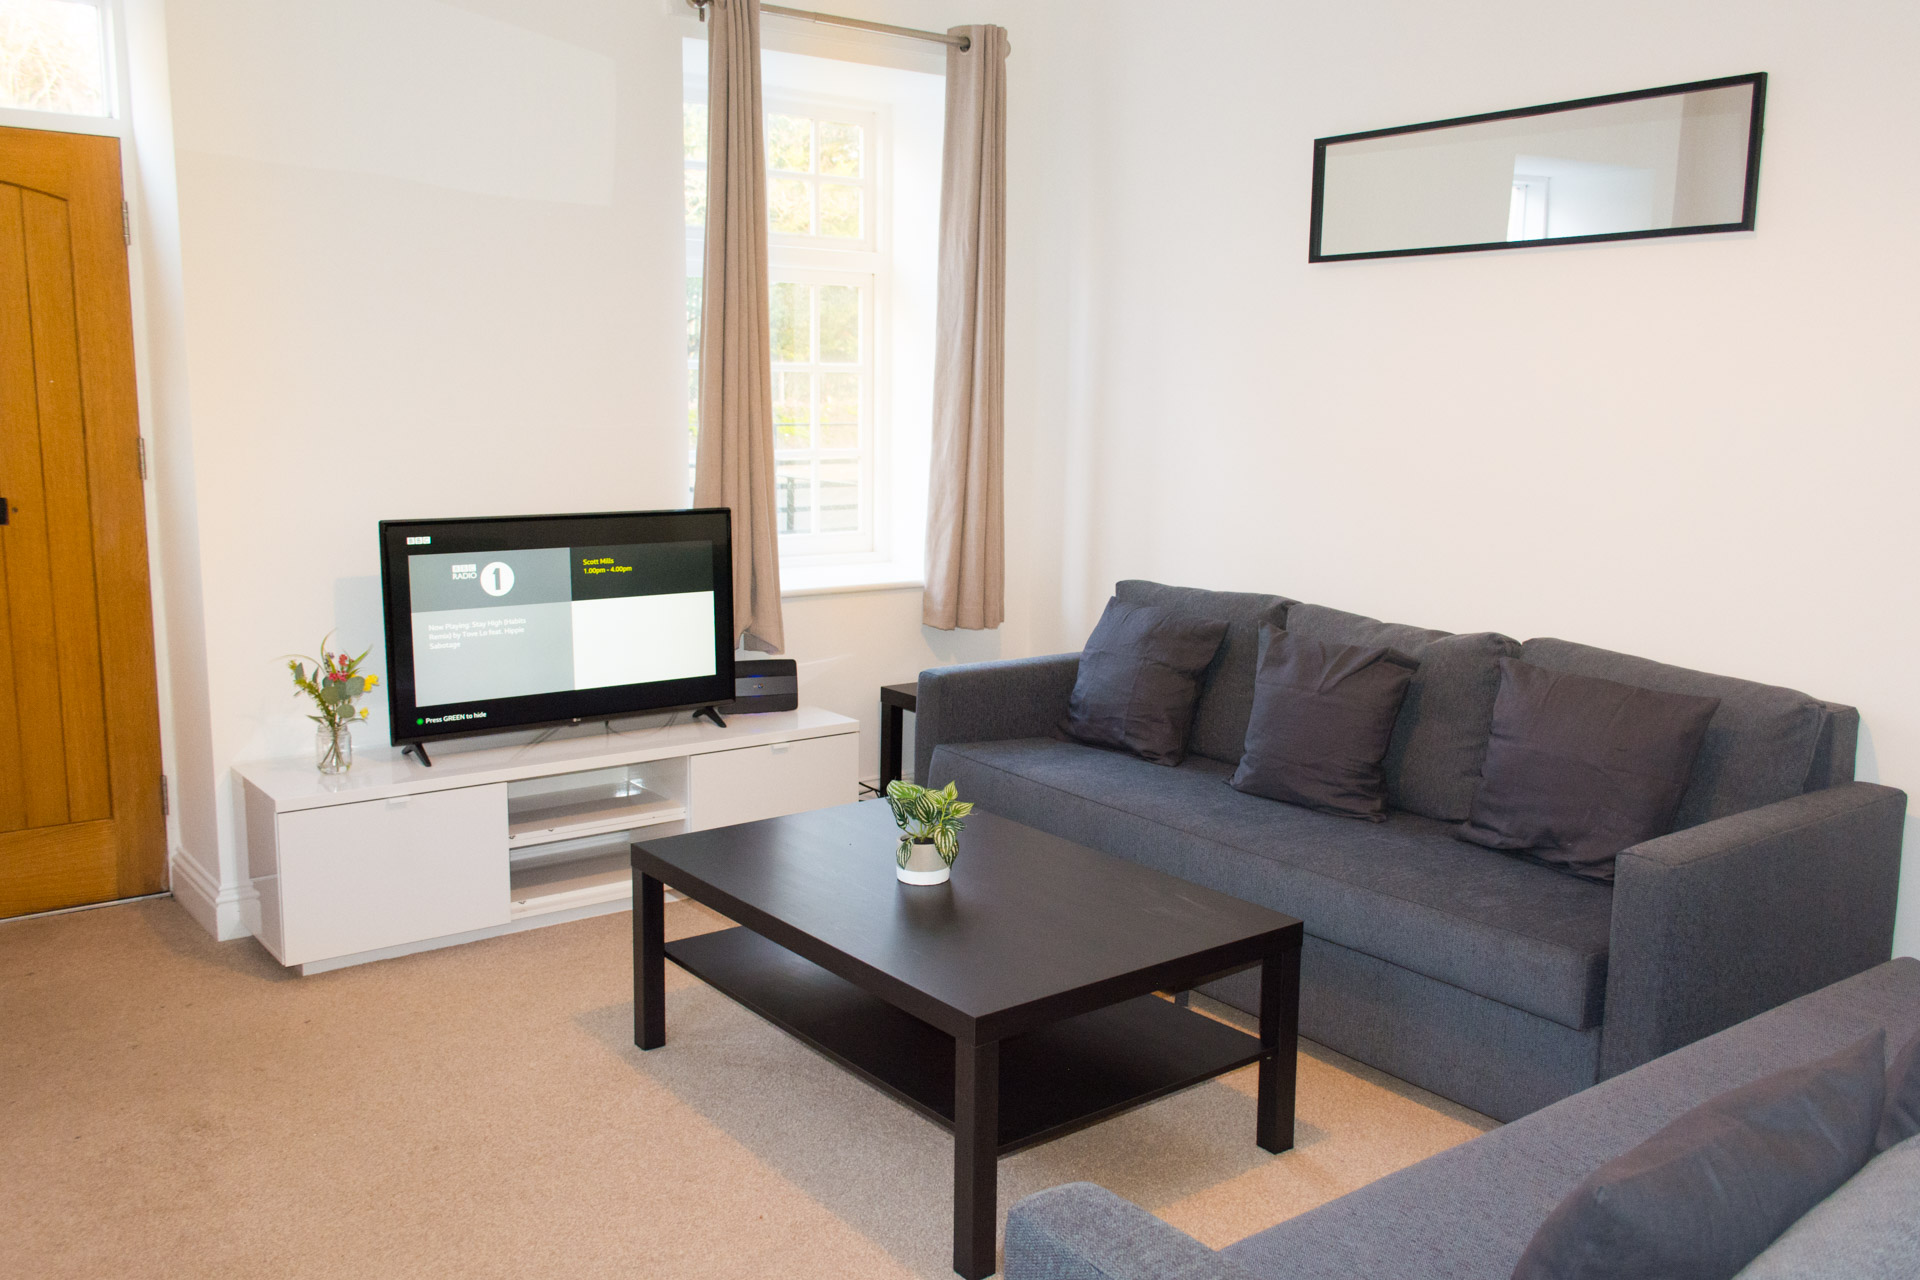 Family living area, with coffee table and flat screen television.